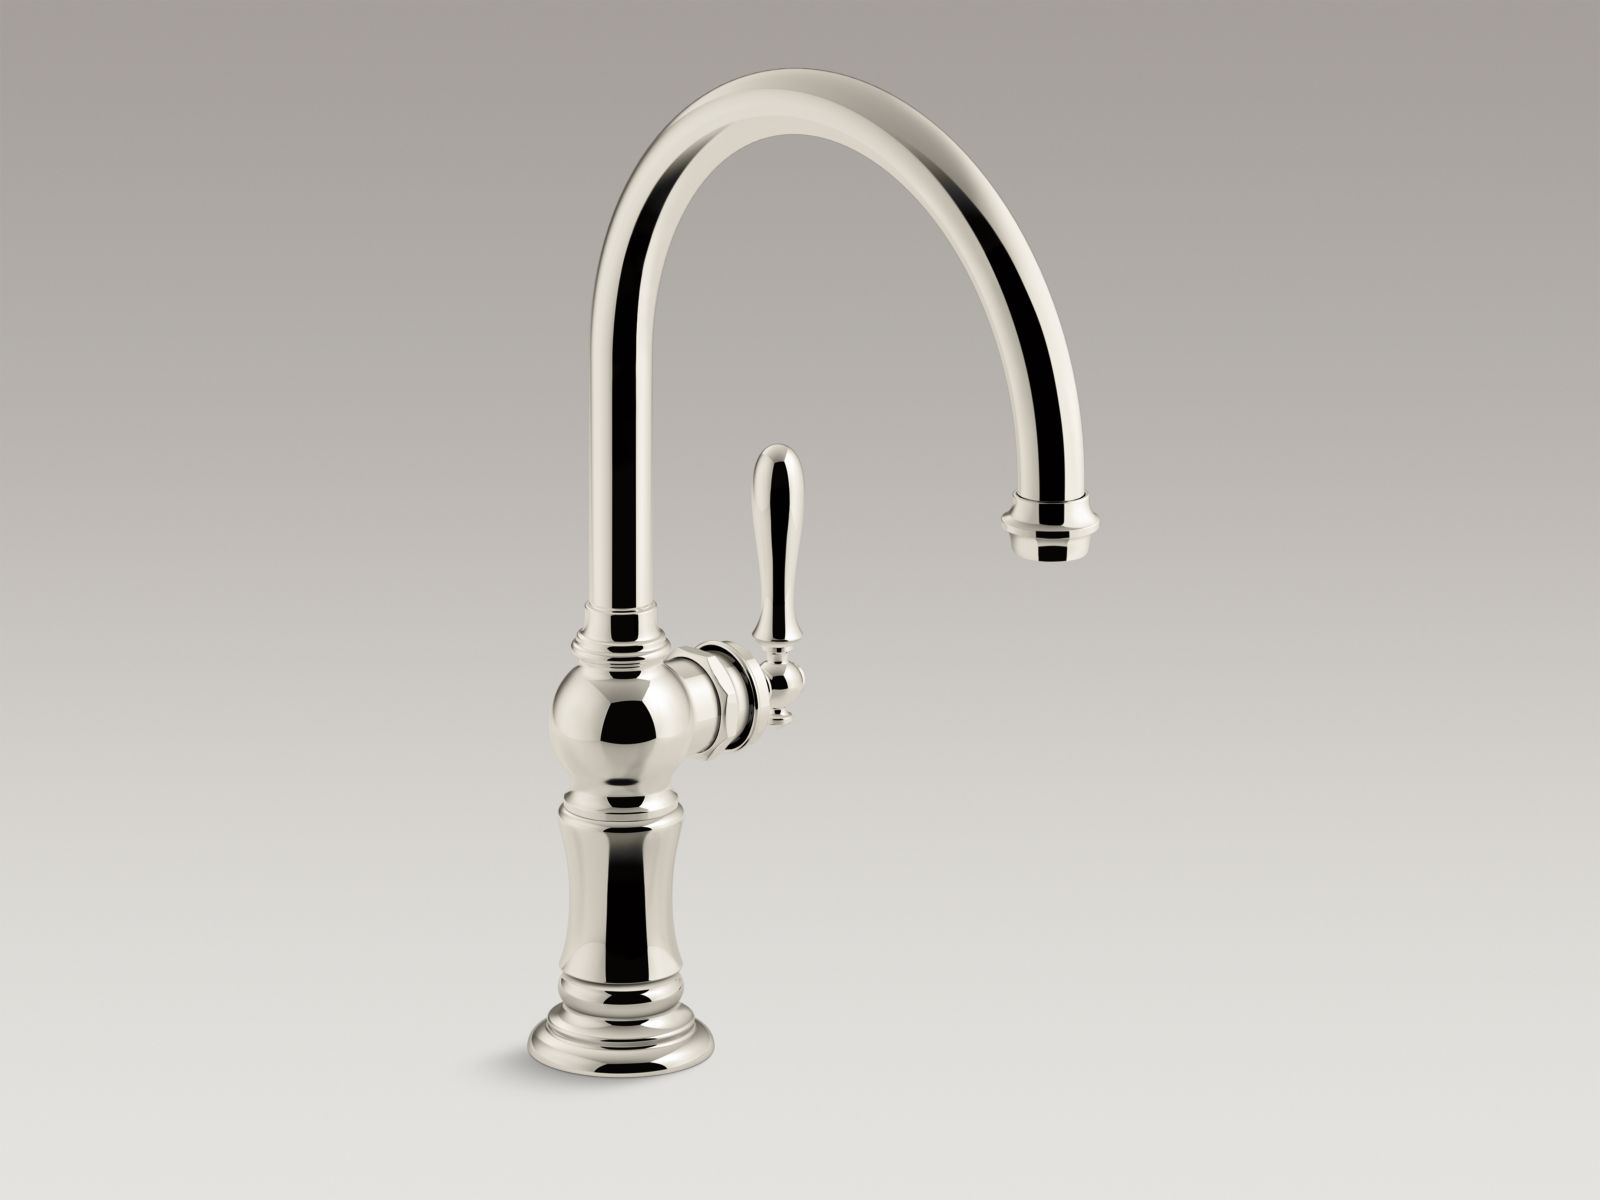 "Kohler Artifacts® K-99263-SN single-hole kitchen sink faucet with 14-11/16"" swing spout, Arc spout design Vibrant Polished Nickel"